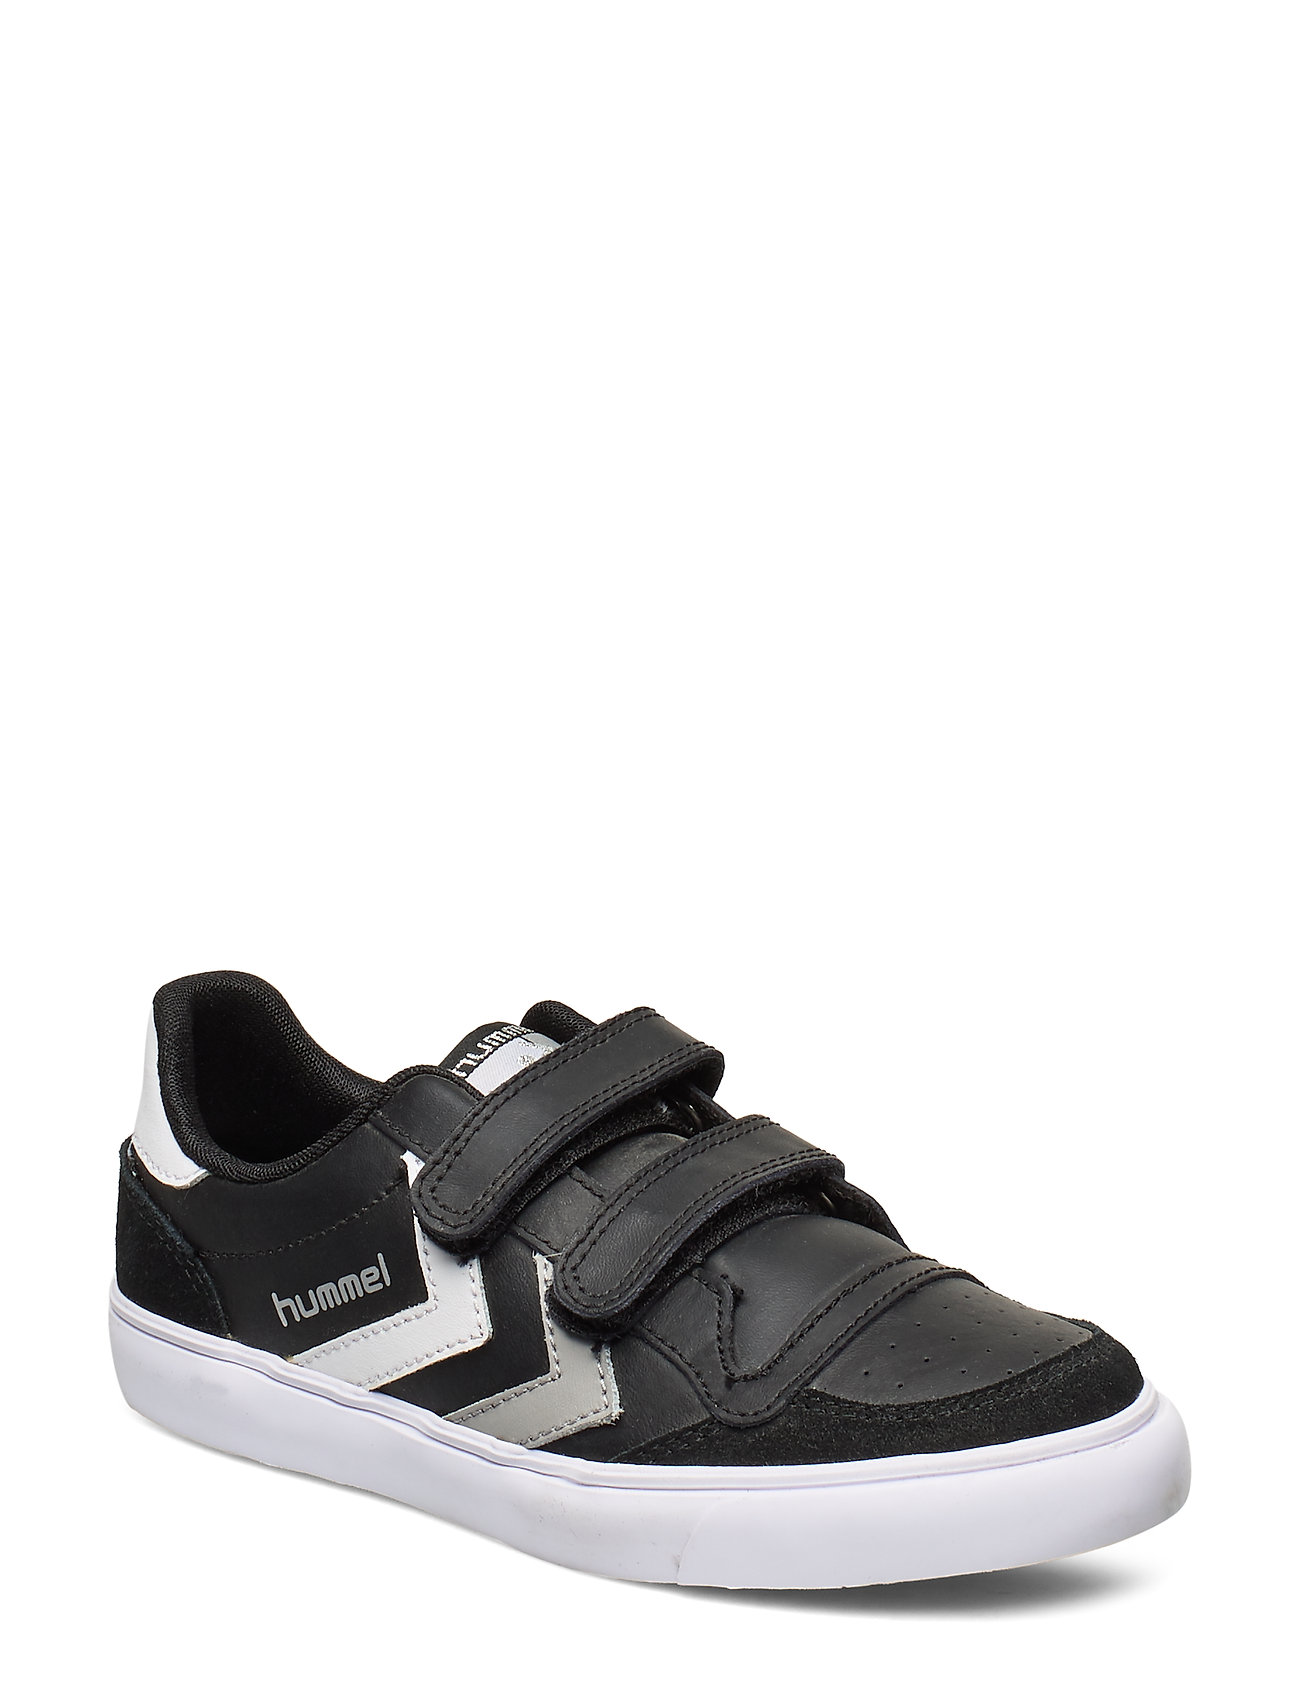 Hummel HUMMEL STADIL JR LEATHER LOW